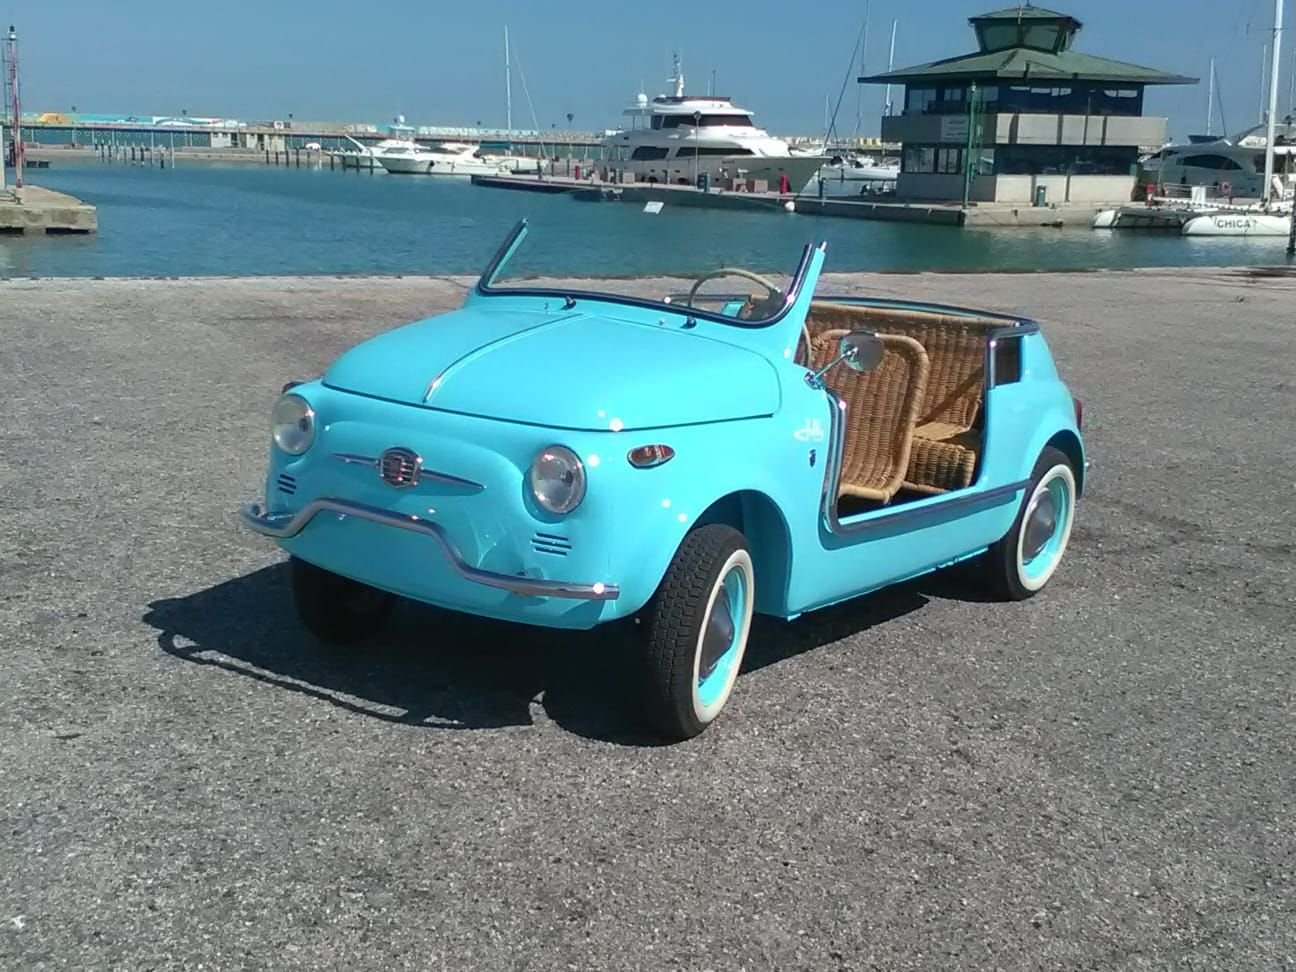 1969 CONVERTED Fiat 500 Vintage Model :  Holyday  BEACH car  For Sale (picture 2 of 6)